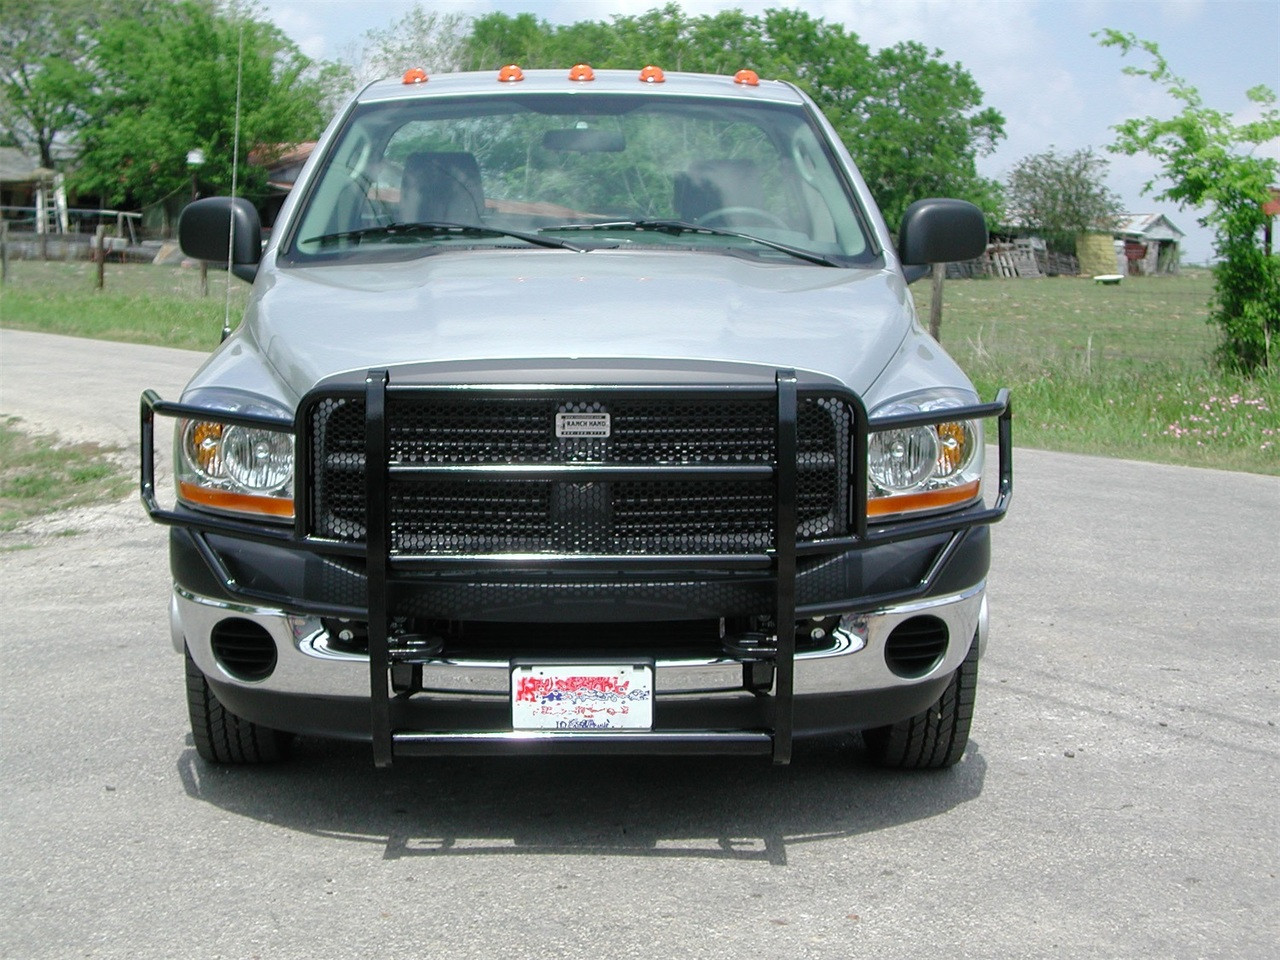 03-09 RAM 2500/3500, 1500/2500 MEGA CAB LEGEND GRILLE GUARD